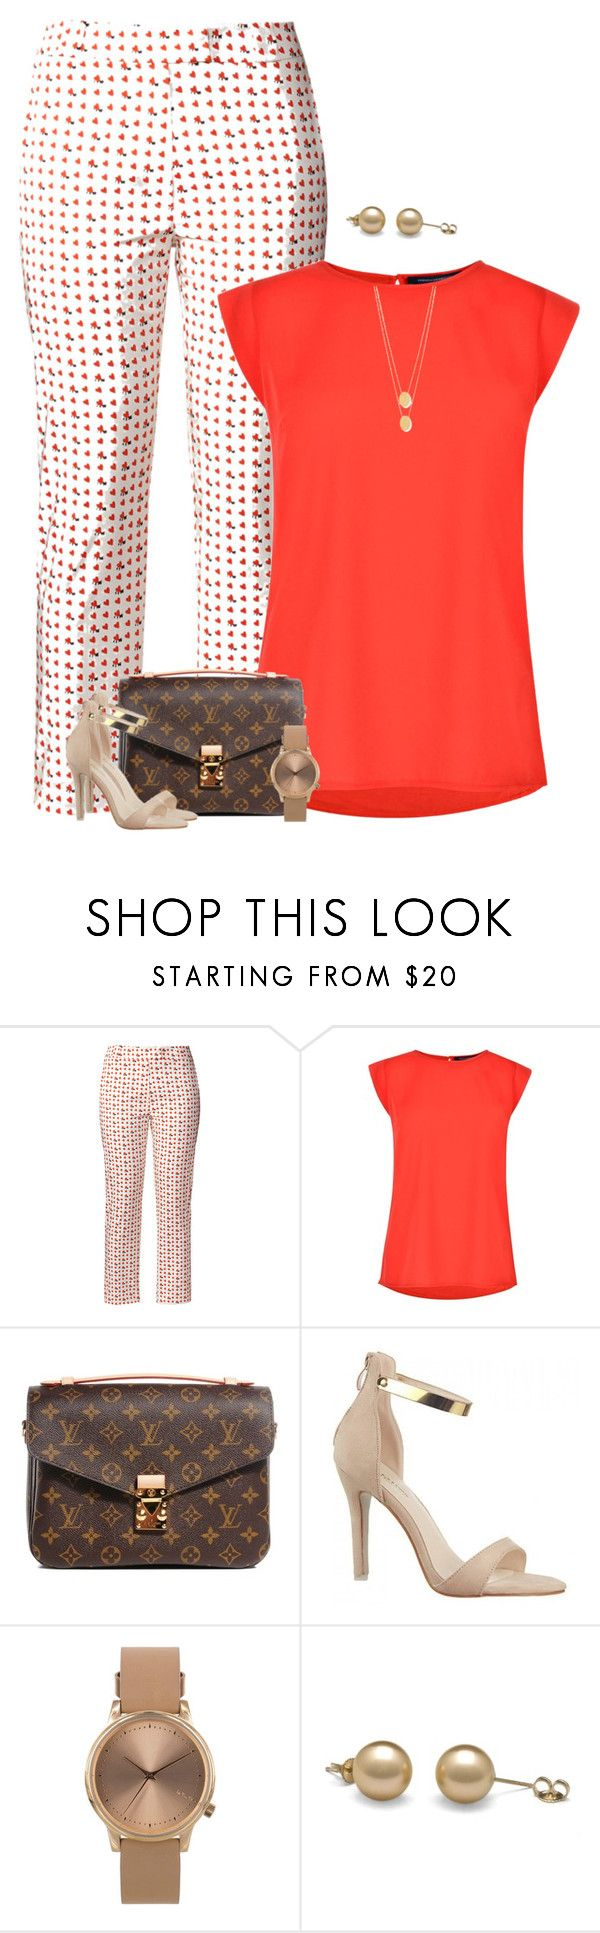 """""""Patterned Trousers"""" by majezy ❤ liked on Polyvore featuring Orla Kiely, French Connection, Louis Vuitton, Topshop and Jennifer Zeuner"""